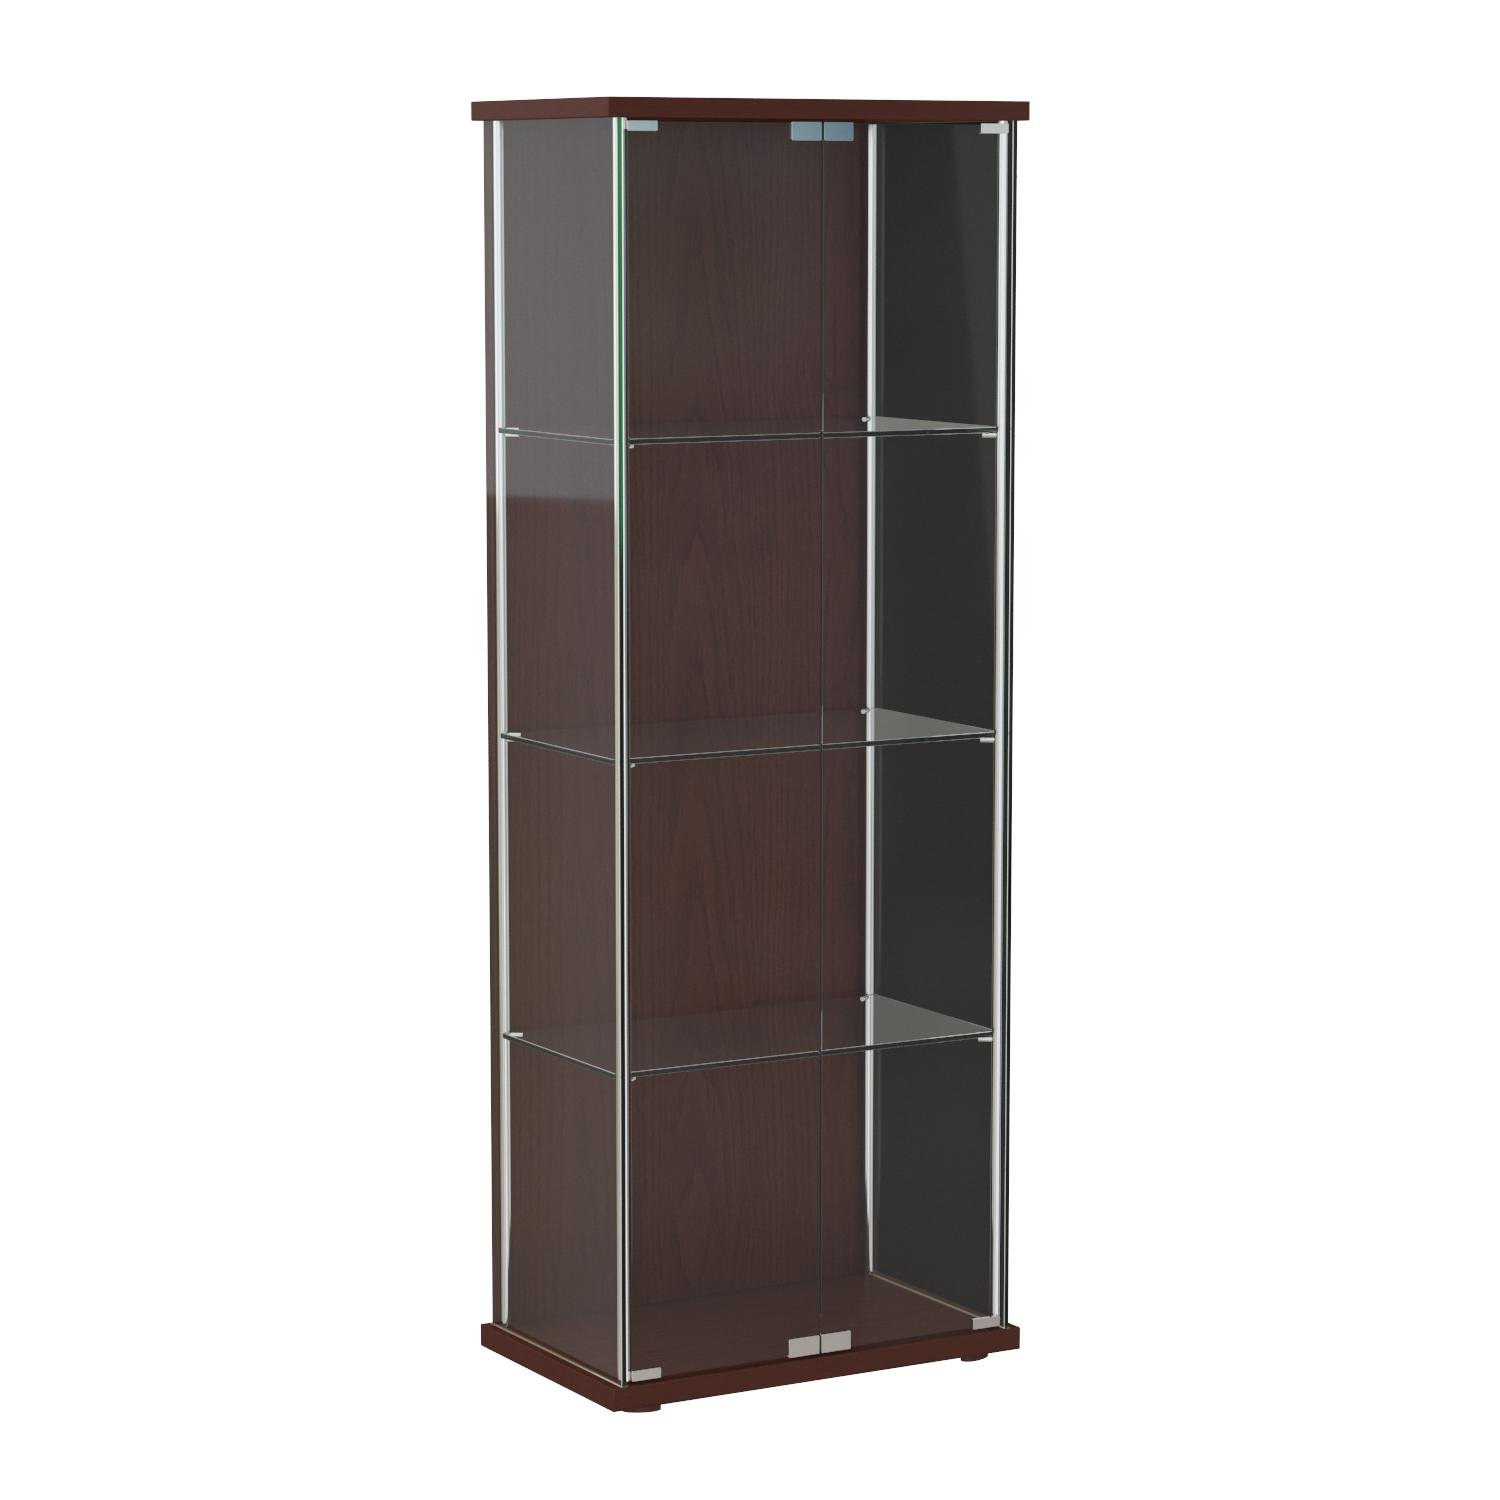 Coaster Home Furnishings Contemporary Curio Cabinet, Cappuccino by Coaster Home Furnishings